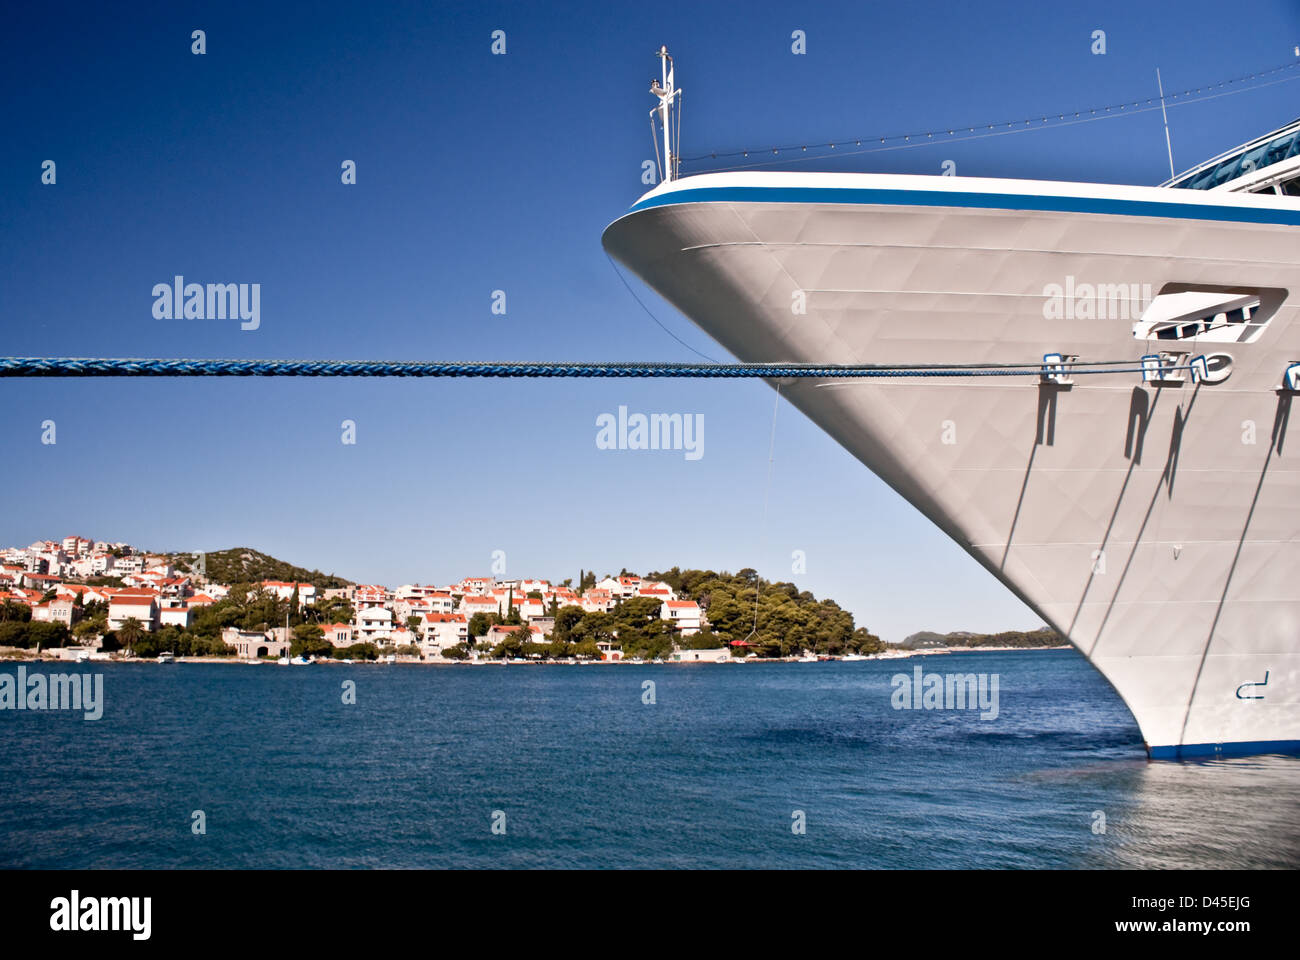 Cruise ship's bow with Dubrovnik in background - Stock Image